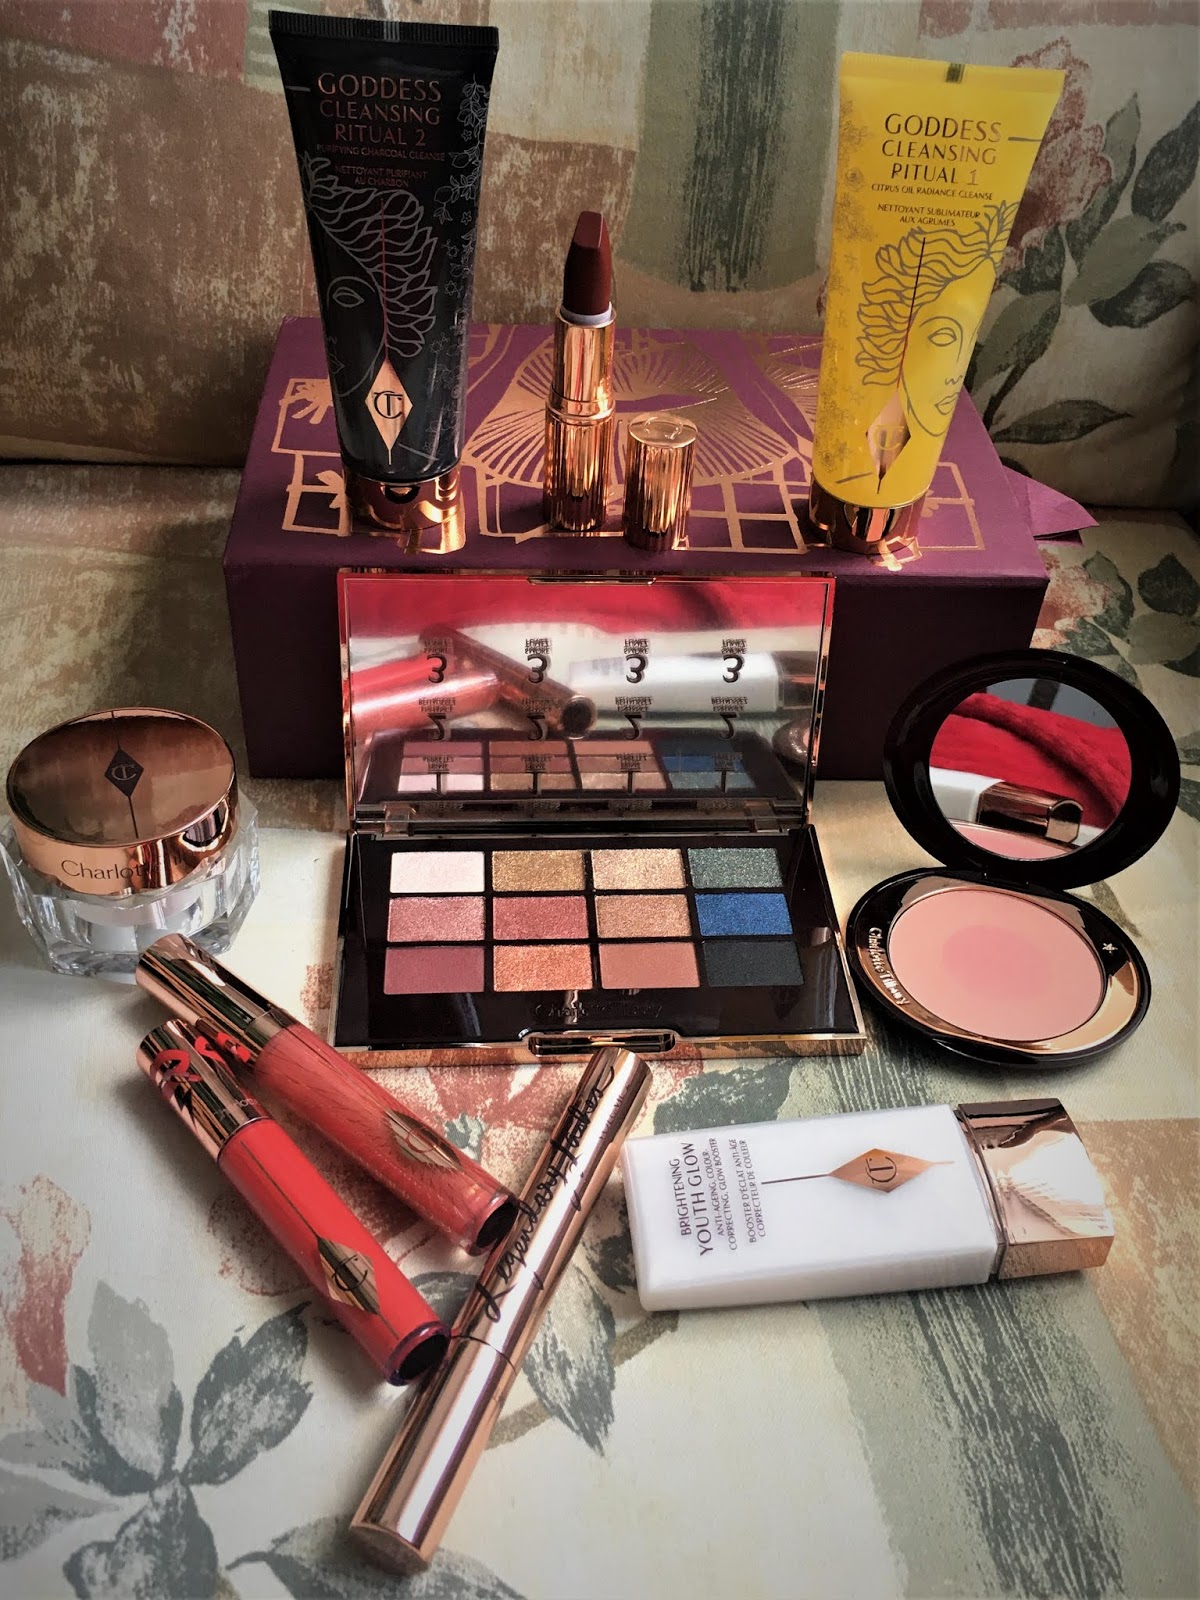 mystery-box-face-cream-skincare-lipstick-latex-love-magic-cream-youth-primer-mascara-lipgloss-cleanser-palette-icon-blush-chalotte-tilbury-uk-2019-winter-december-makeup-luiza-calini-beauty-lifestyle-blogger-uk-leeds-bradford-westyorkshire